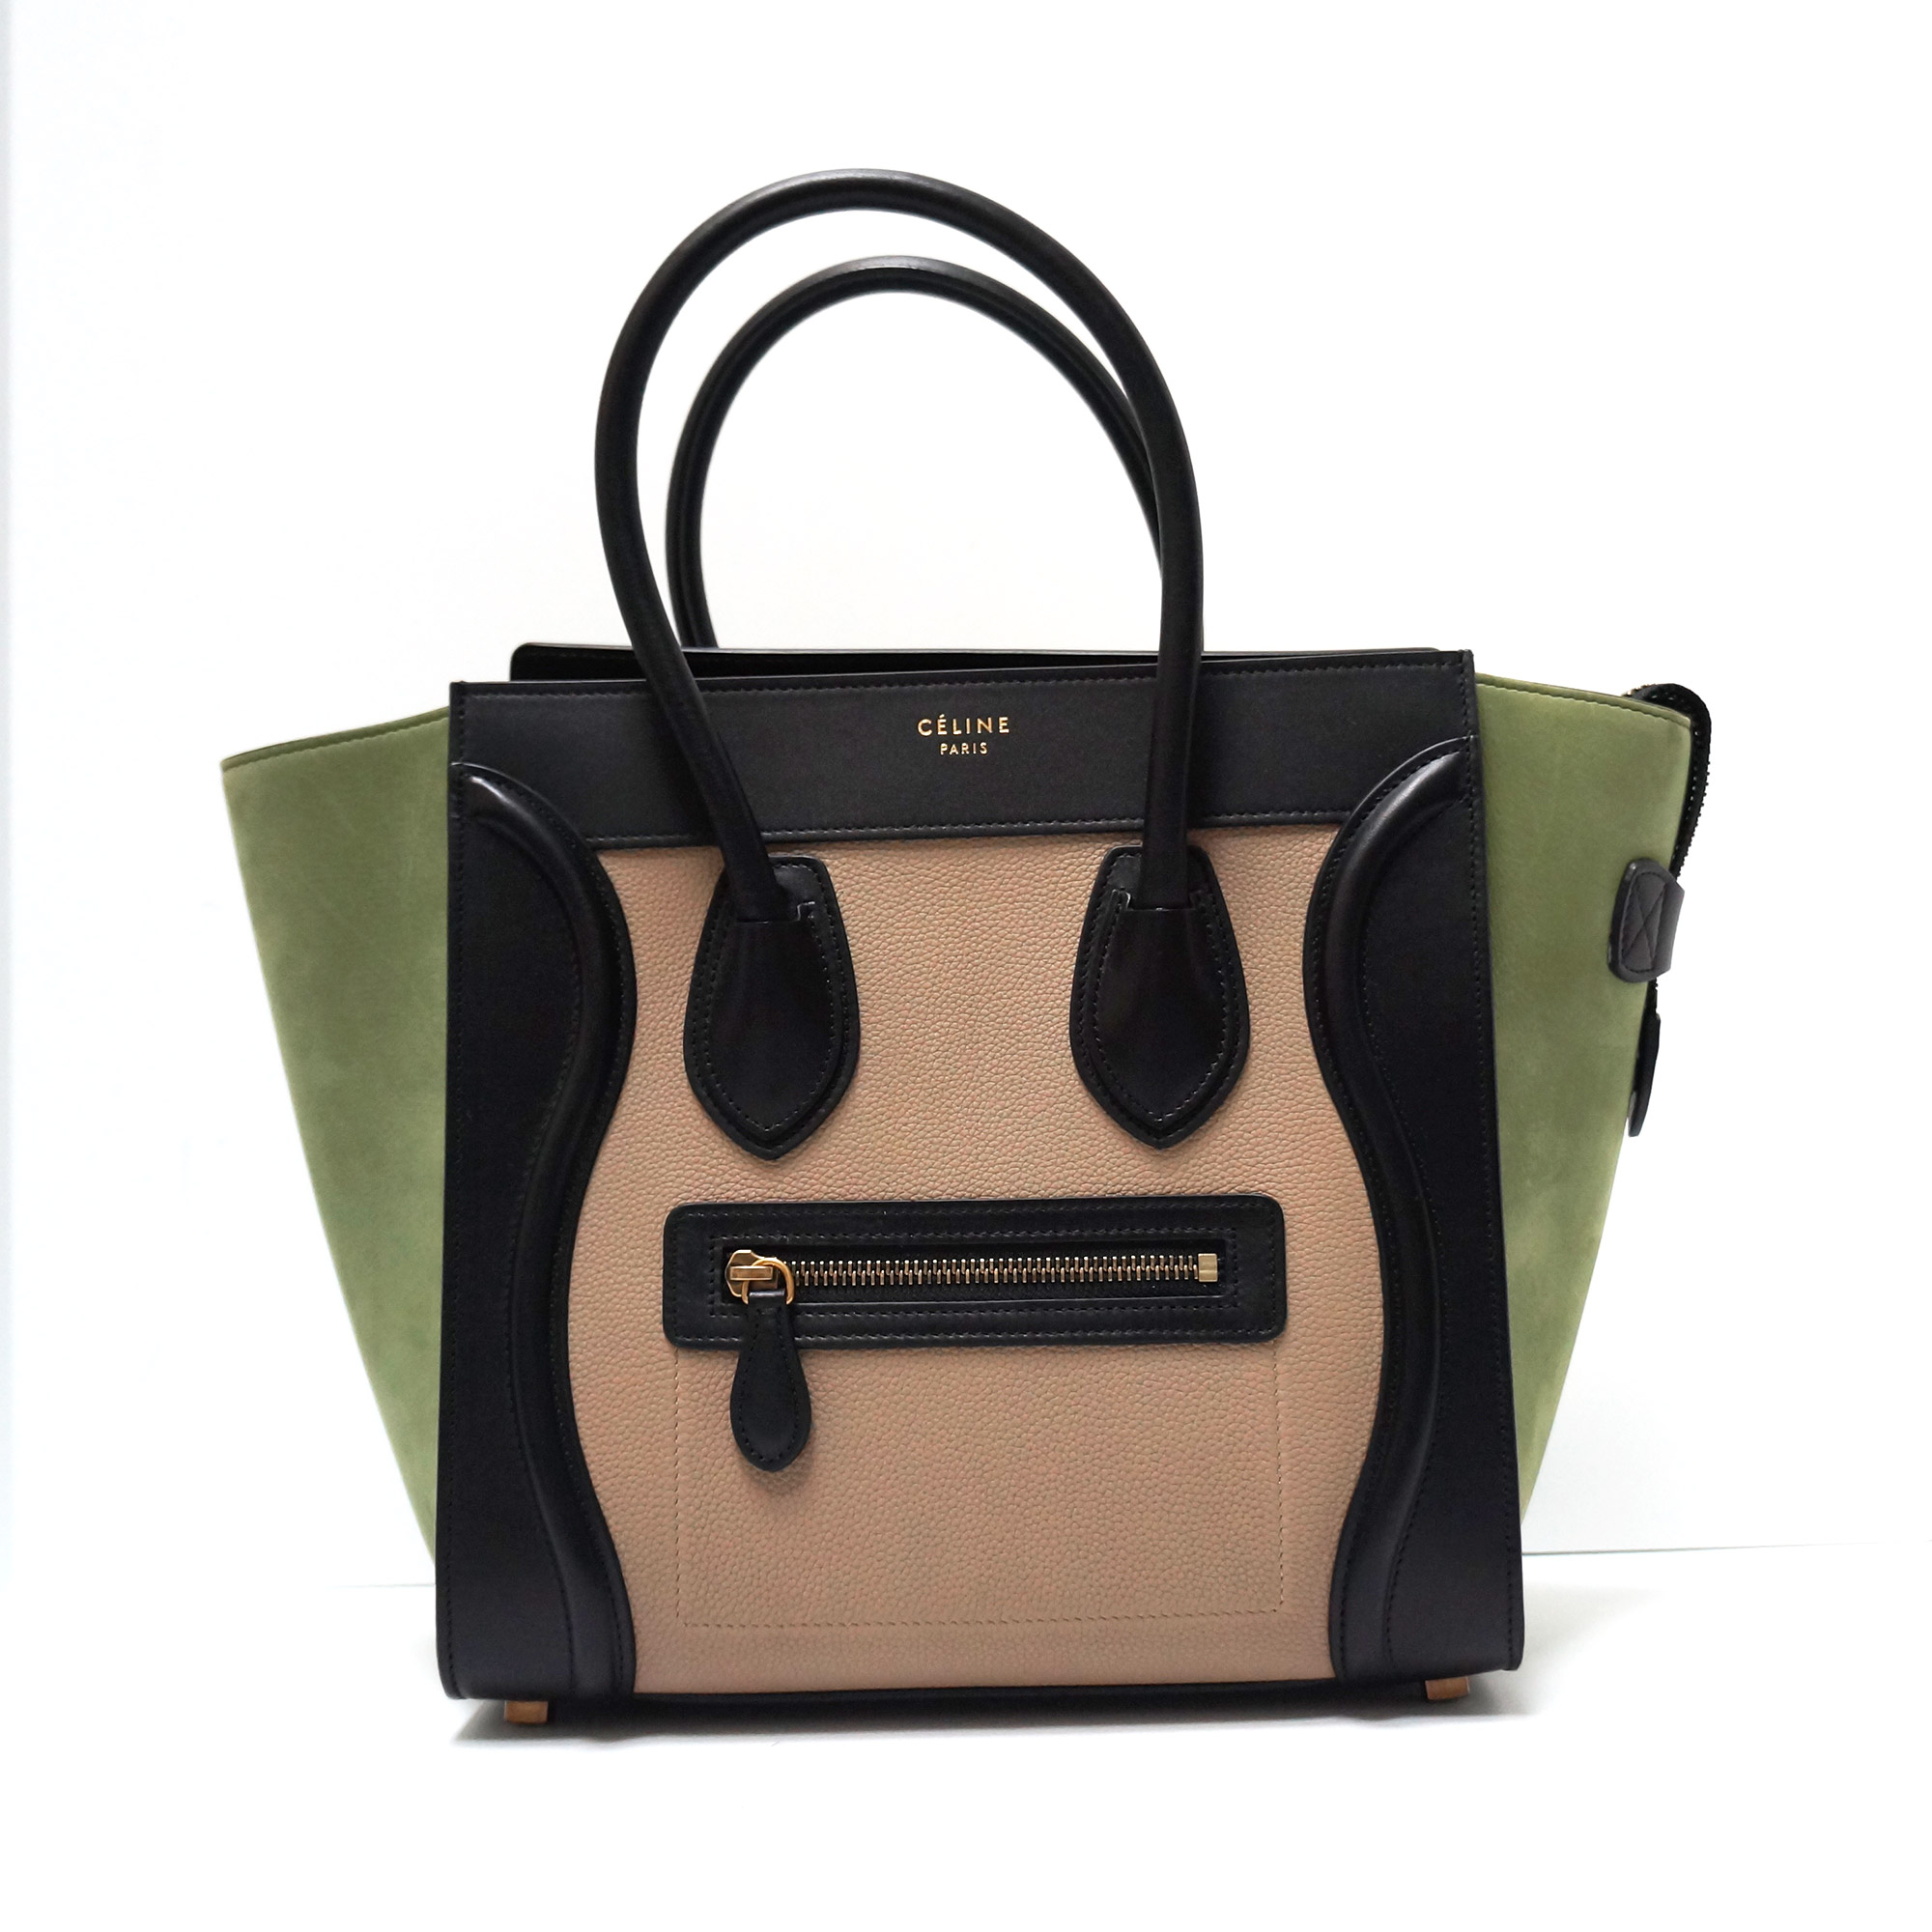 Celine Micro Luggage Tote Bag 31b3f2536e5c4